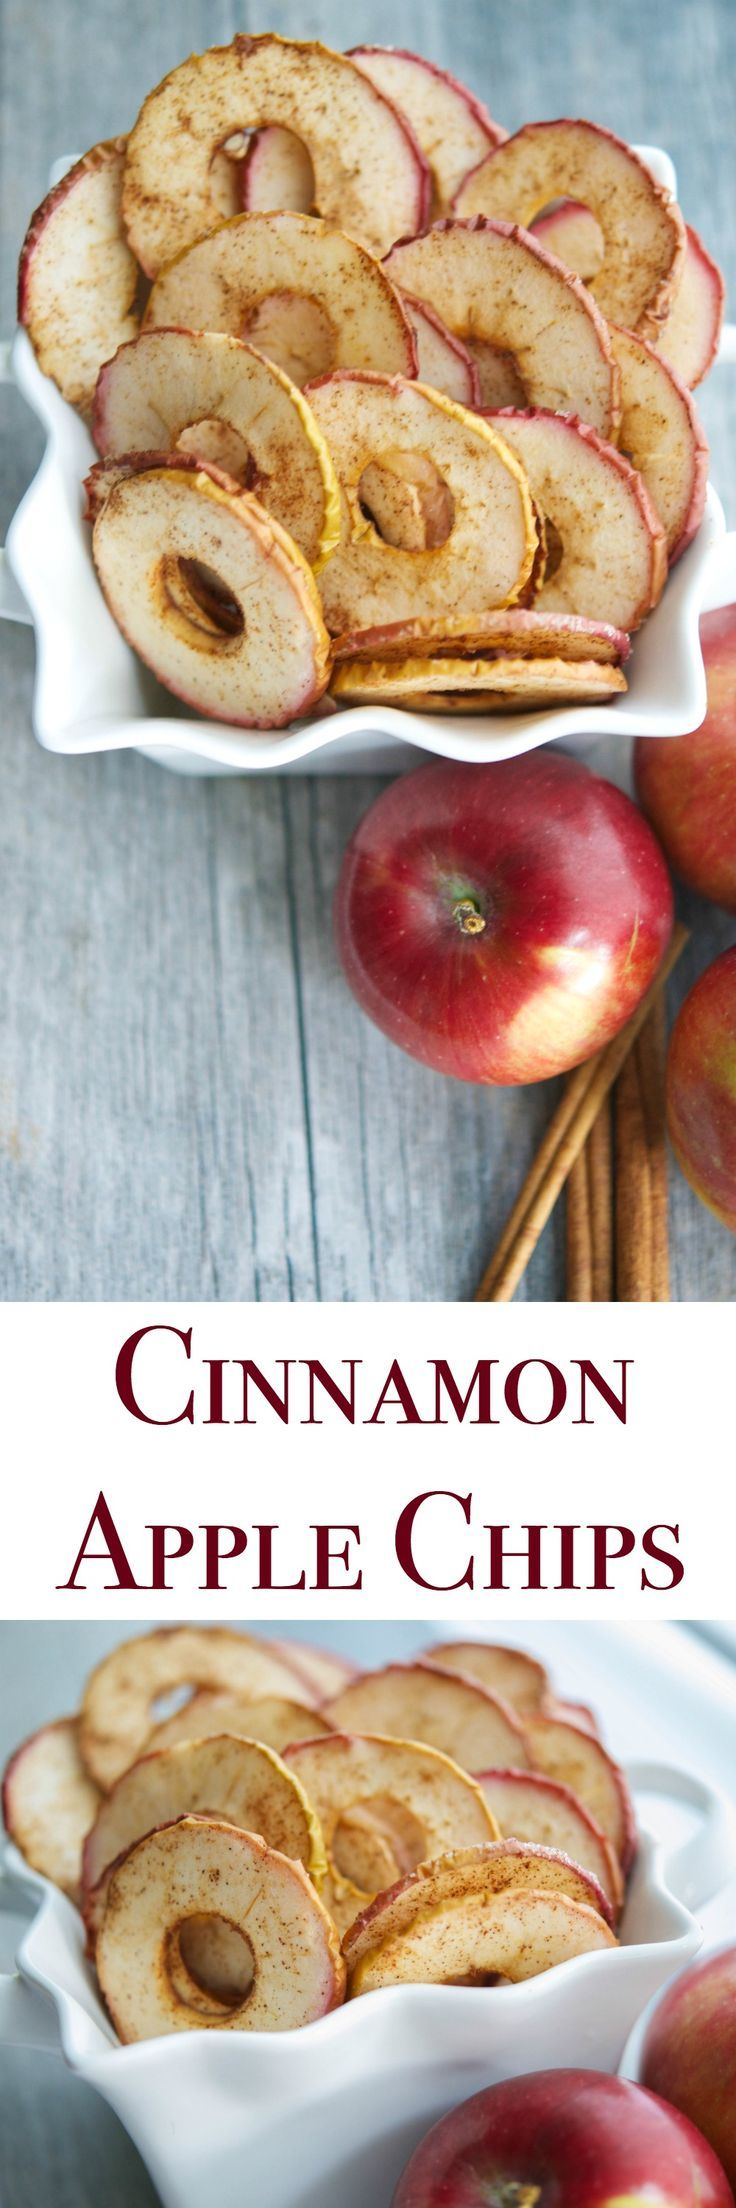 We do homework. Jam from apples: how to cook, that it was delicious